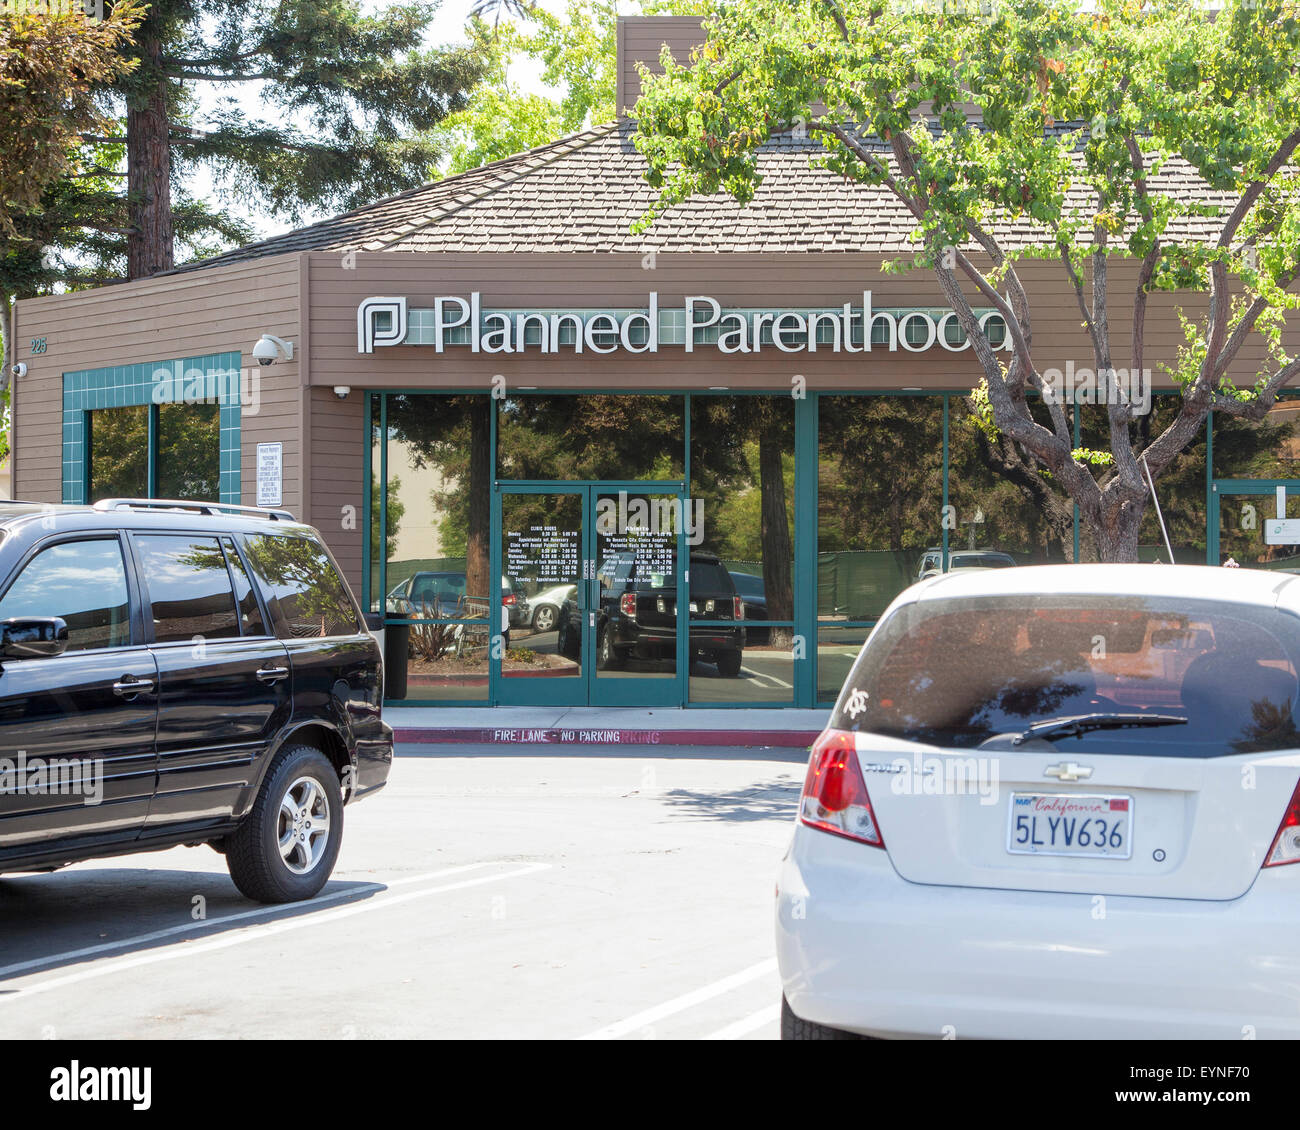 A Planned Parenthood office located in a strip mall in Mountain View, CA. - Stock Image